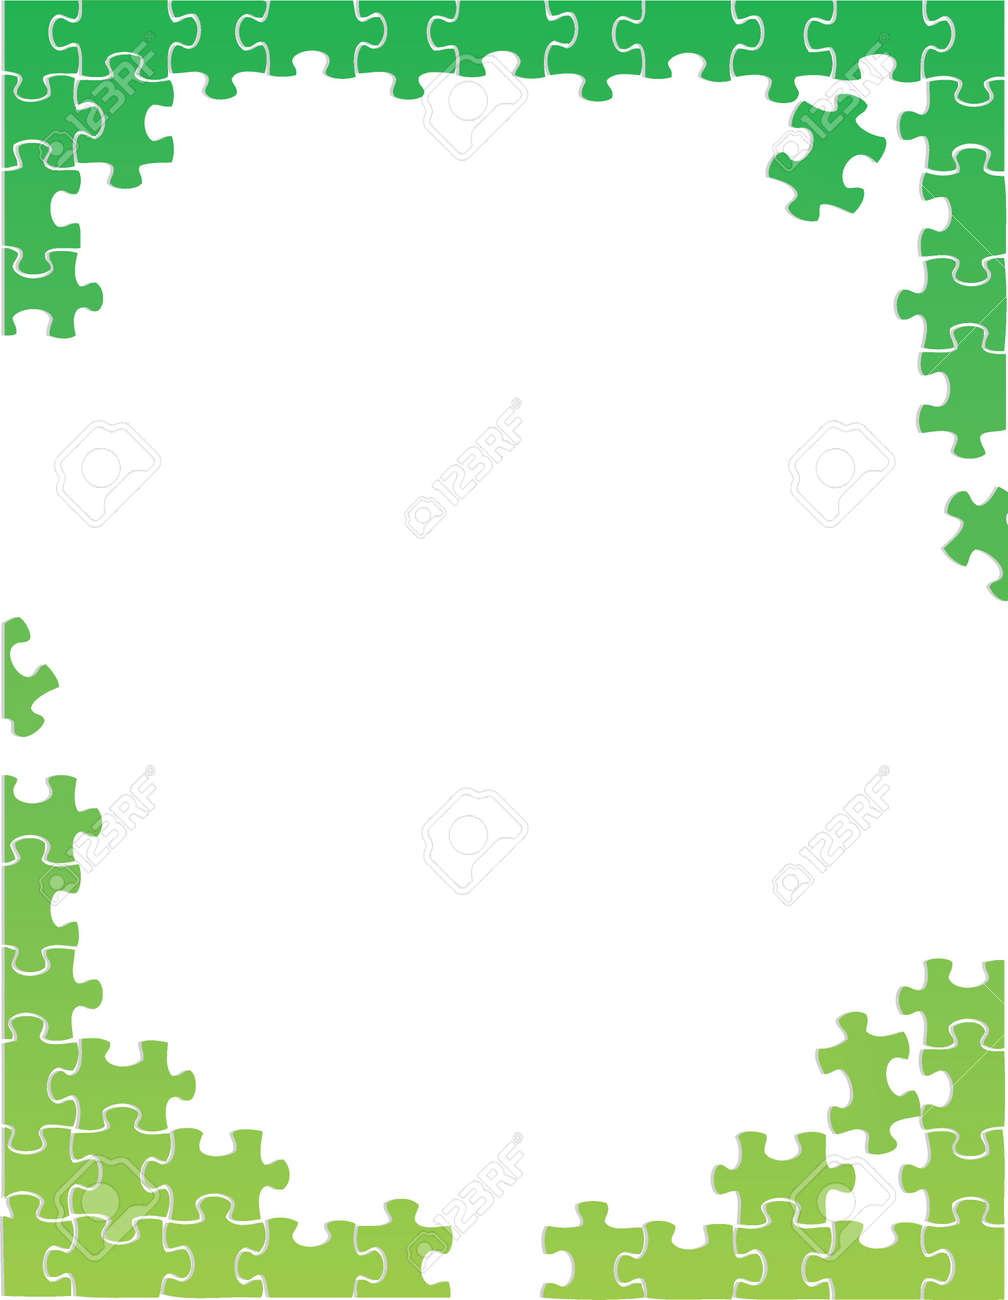 green puzzle pieces border template illustration design over